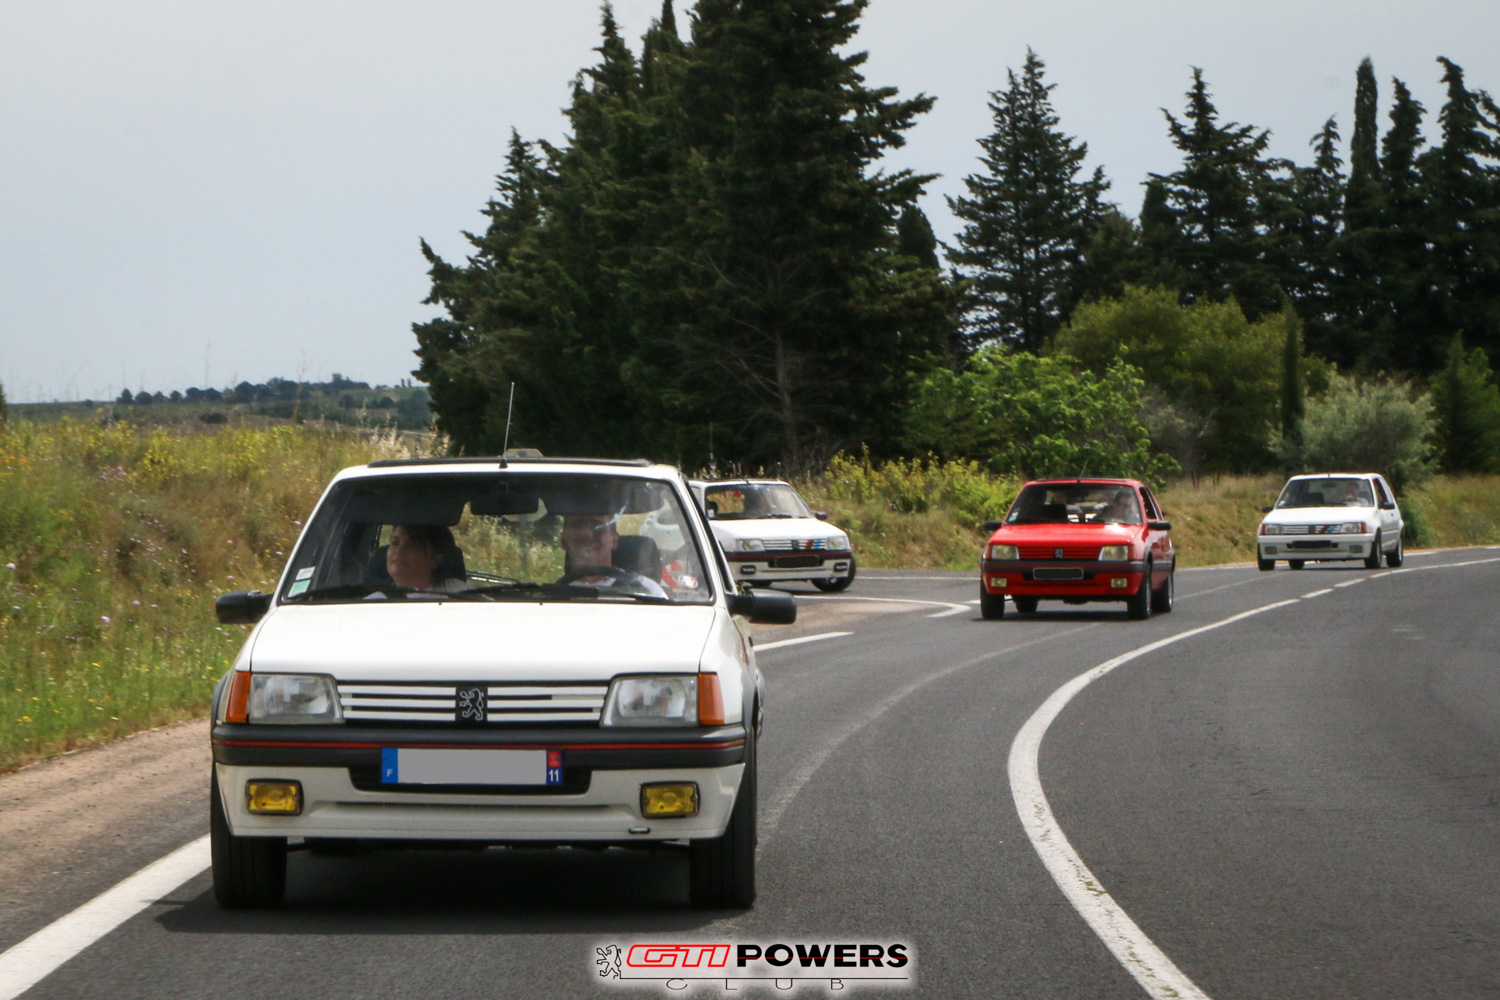 [GTIPOWERS DAYS] Nationale #4 - 8-9-10 Juin 2019 - Beziers - Page 8 Gtipow81